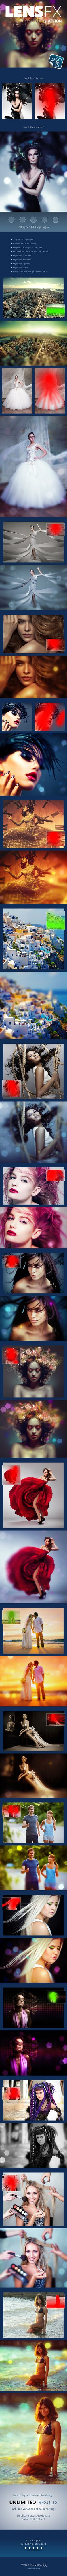 Lens FX - Photoshop action to create an incredible wedding and fashion photography. #wedding #$5